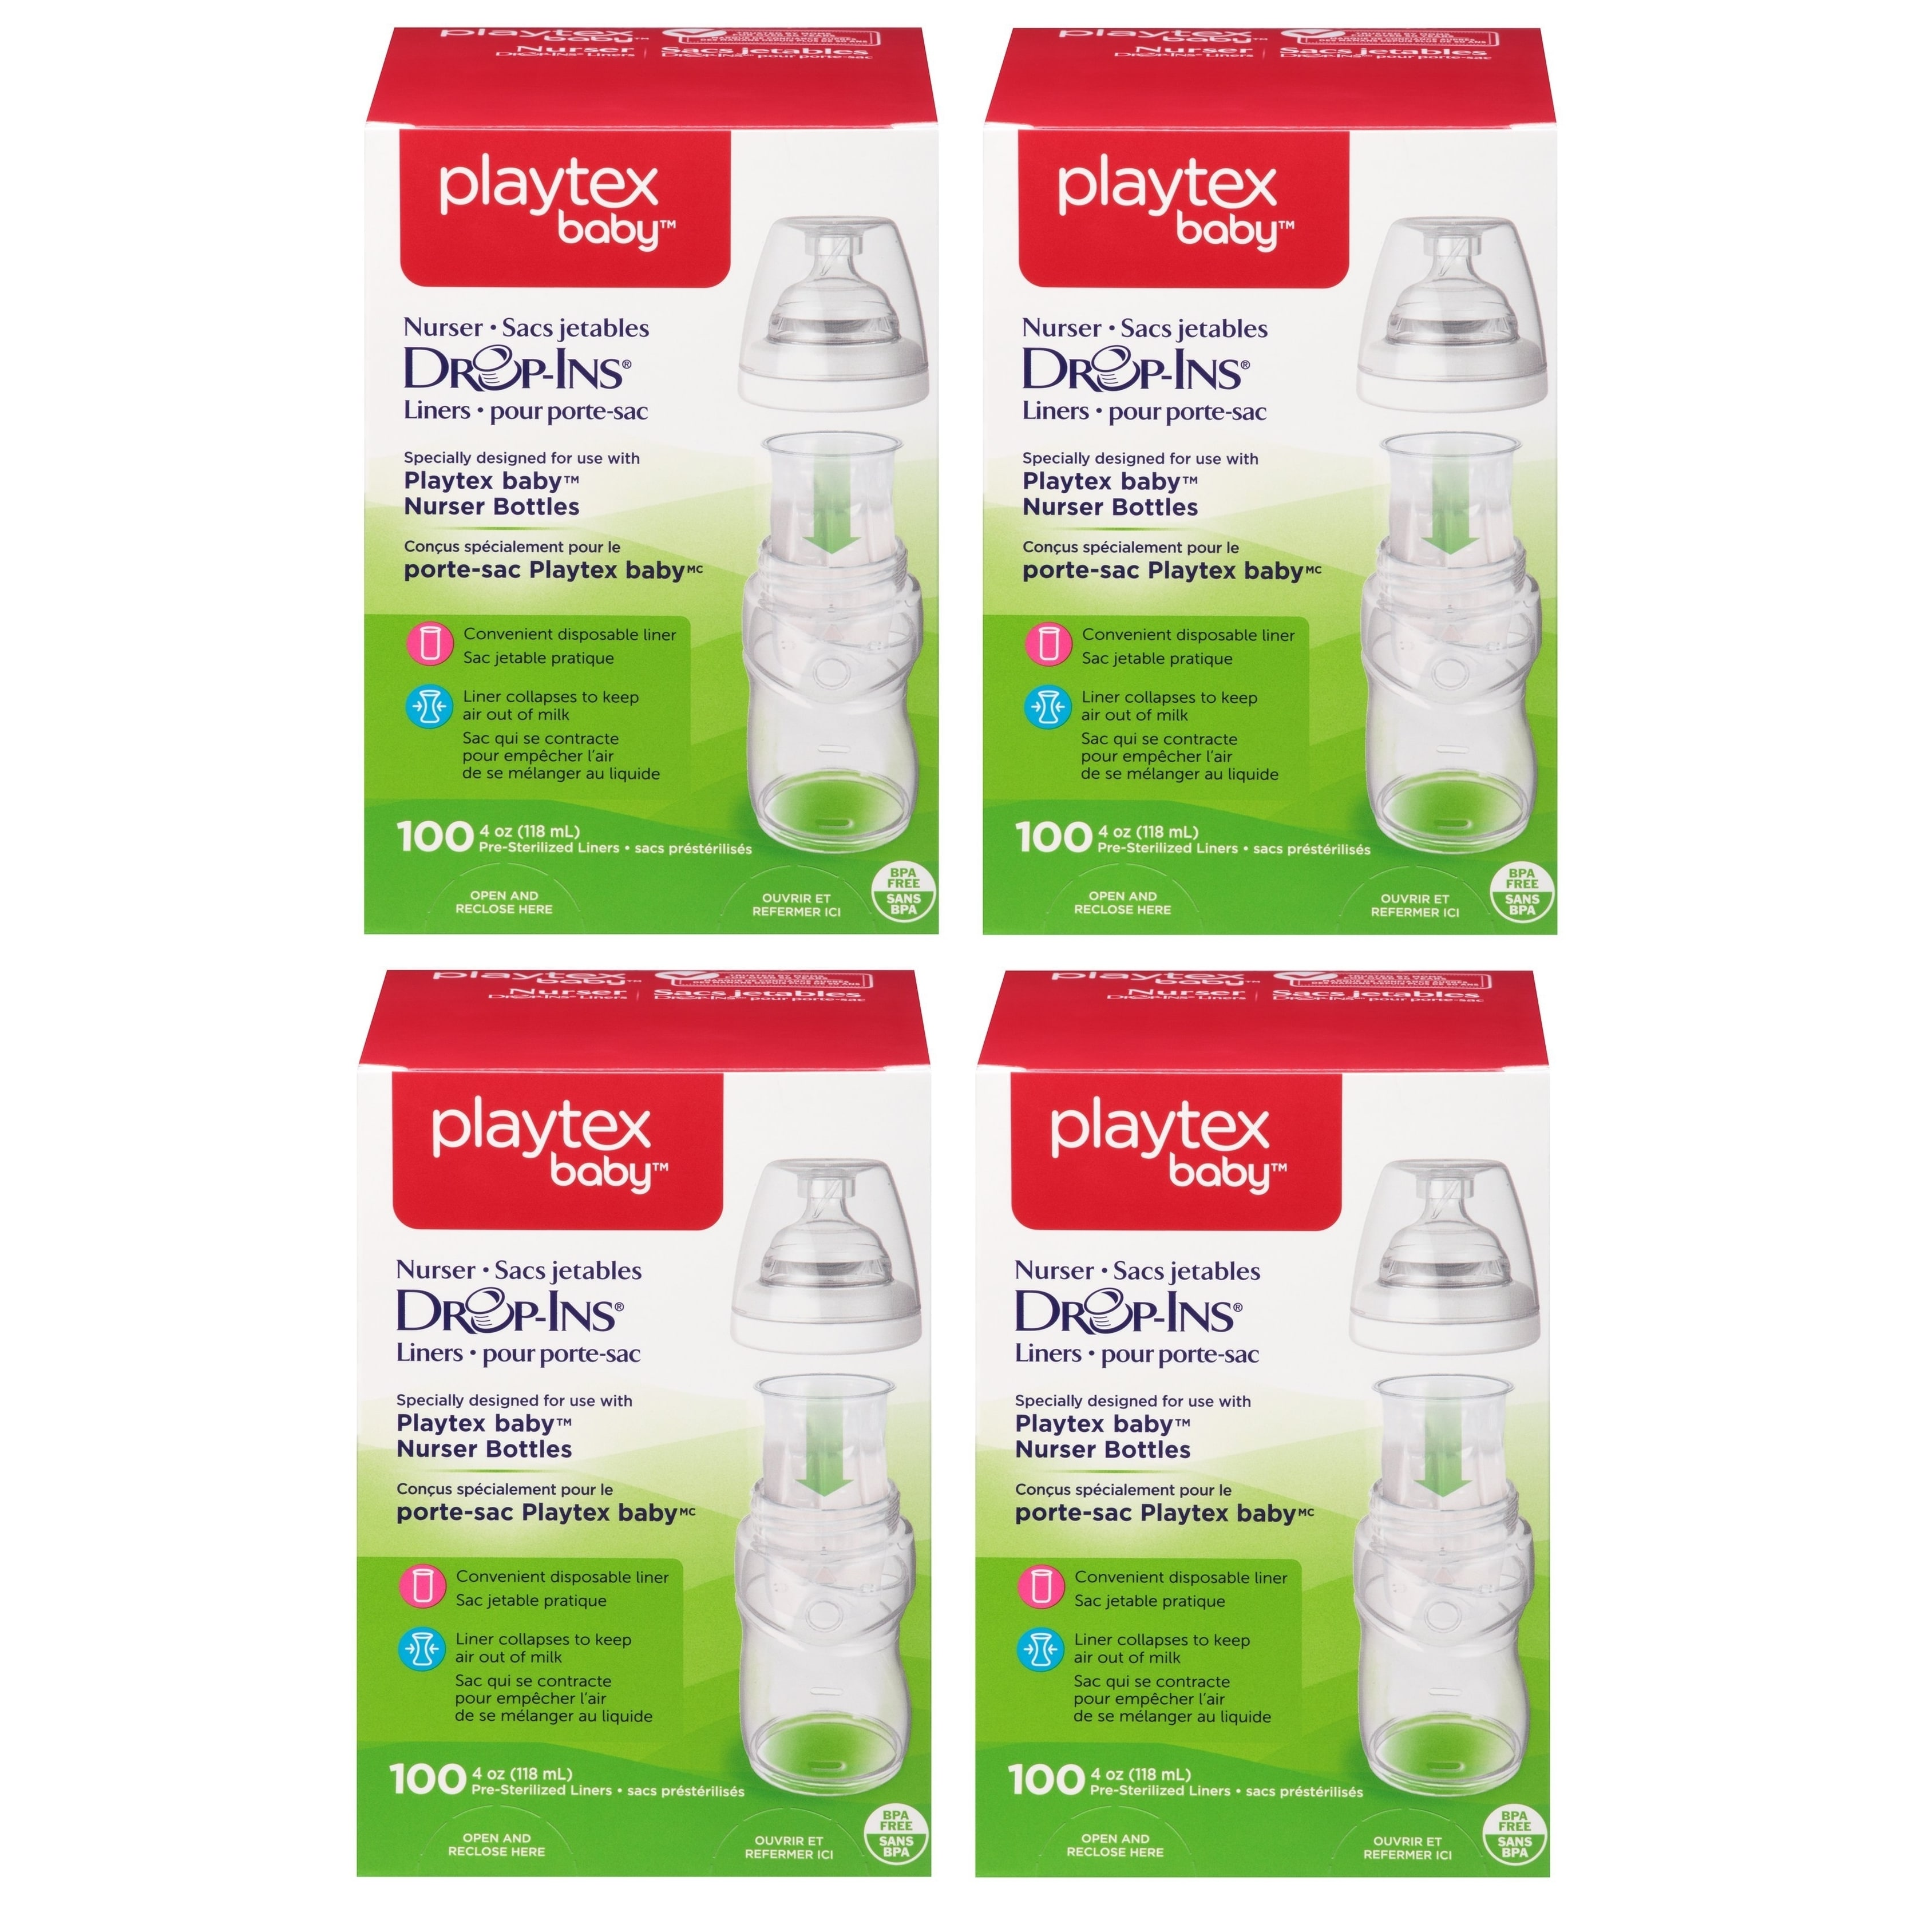 Playtex  4-ounce Drop-Ins 400 Count Liners